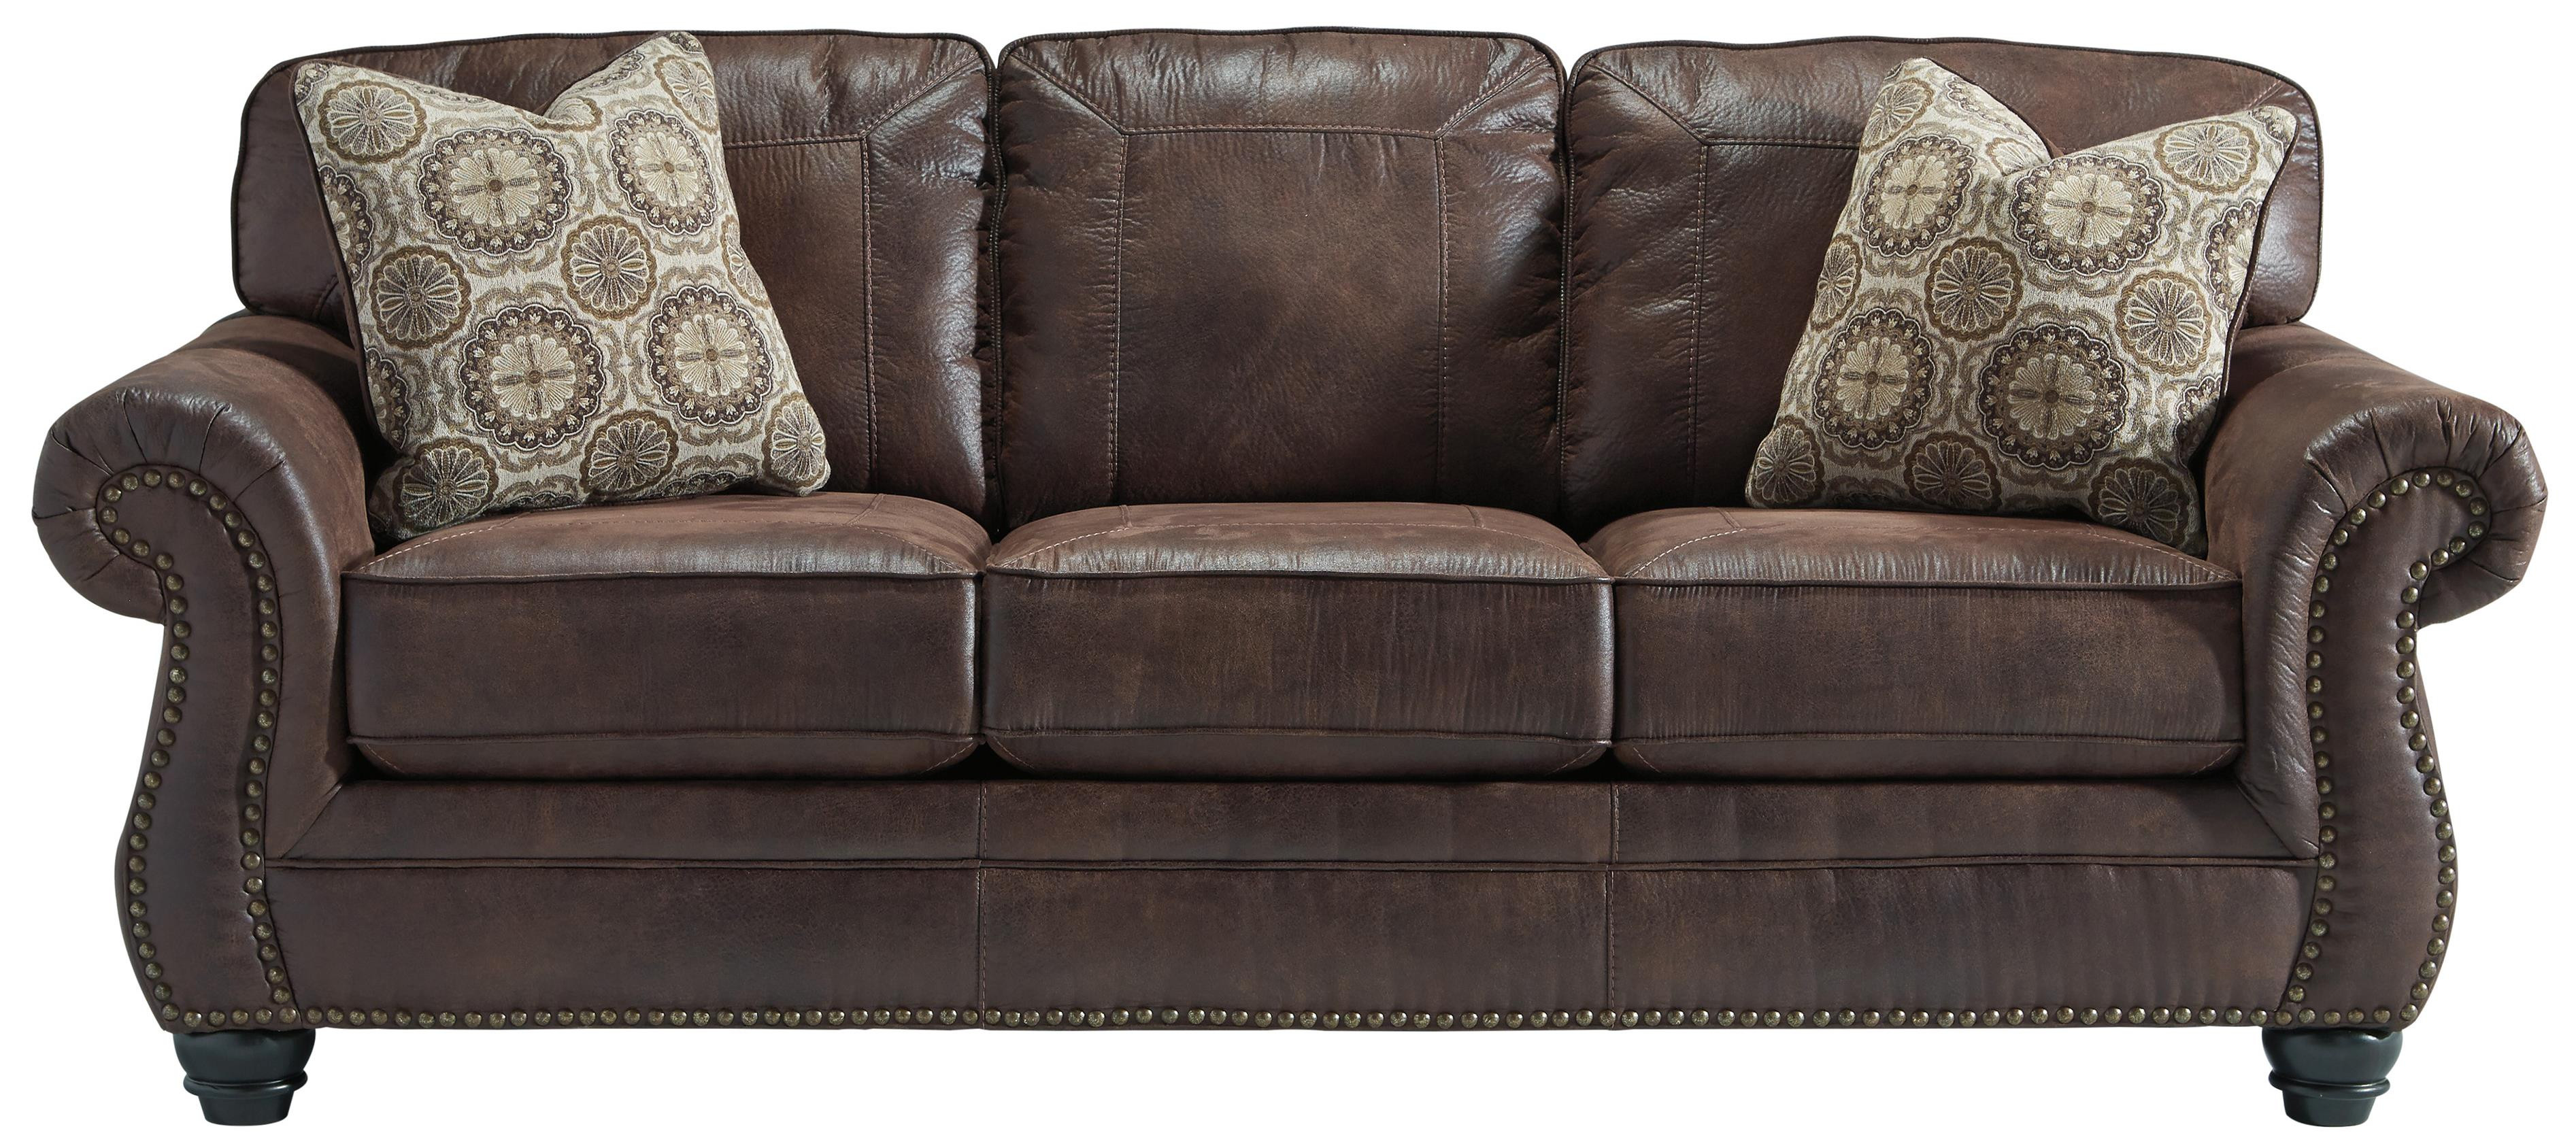 Best ideas about Leather Sofa Sleeper . Save or Pin Faux Leather Queen Sofa Sleeper with Rolled Arms and Now.